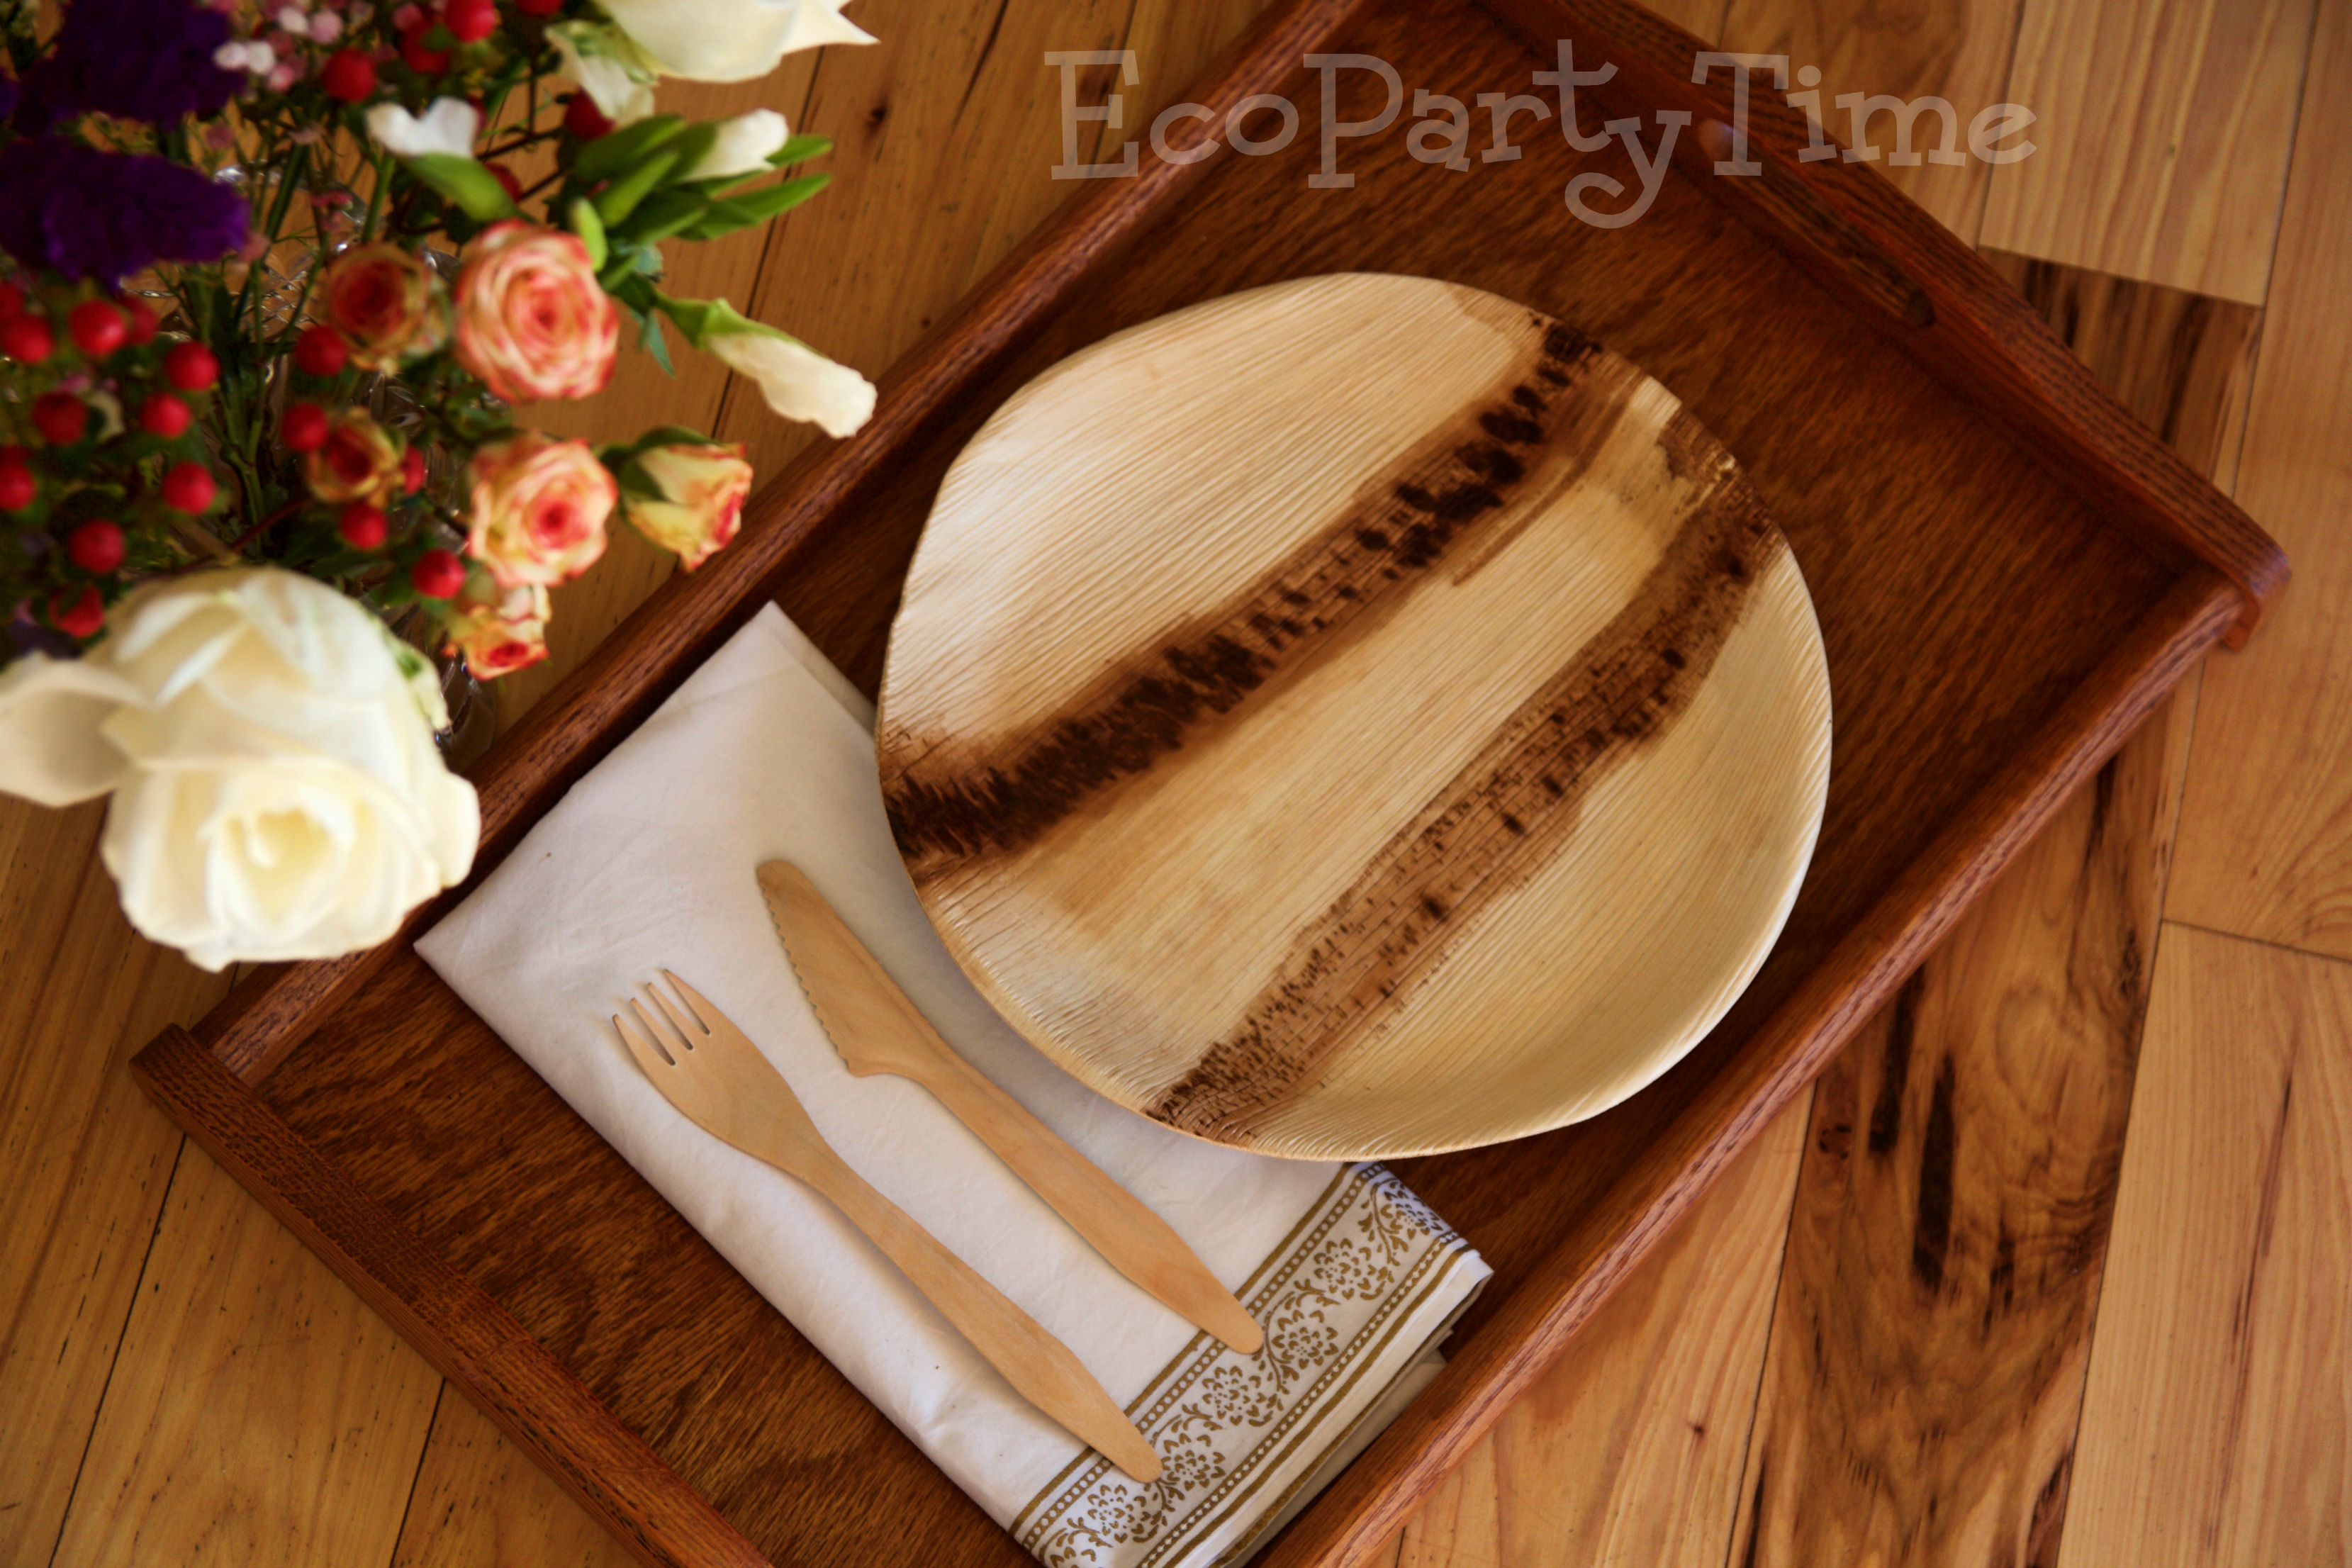 Ecopartytime: Eco Friendly Palm Leaf Tableware